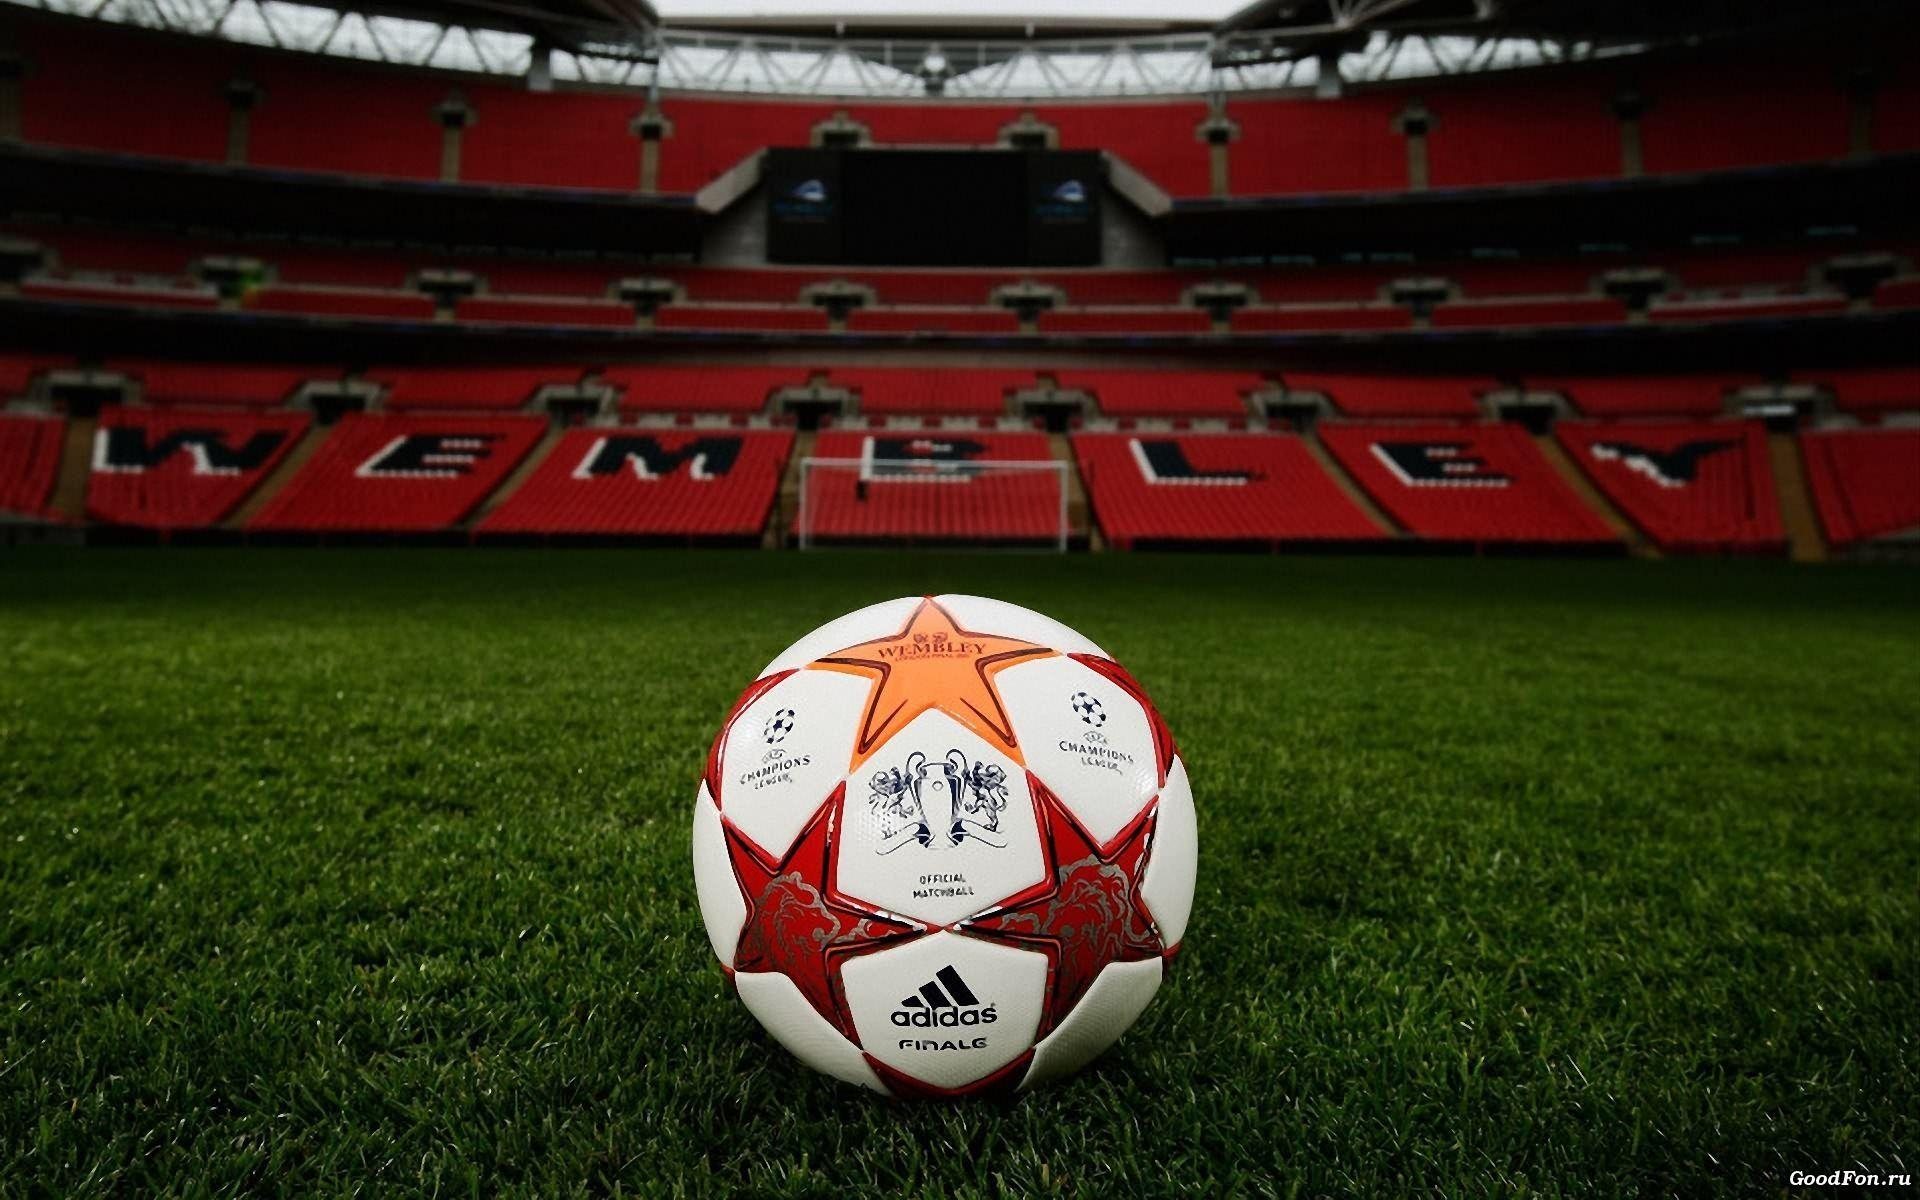 football, Champions League, ball, field, lawn, gate, podium